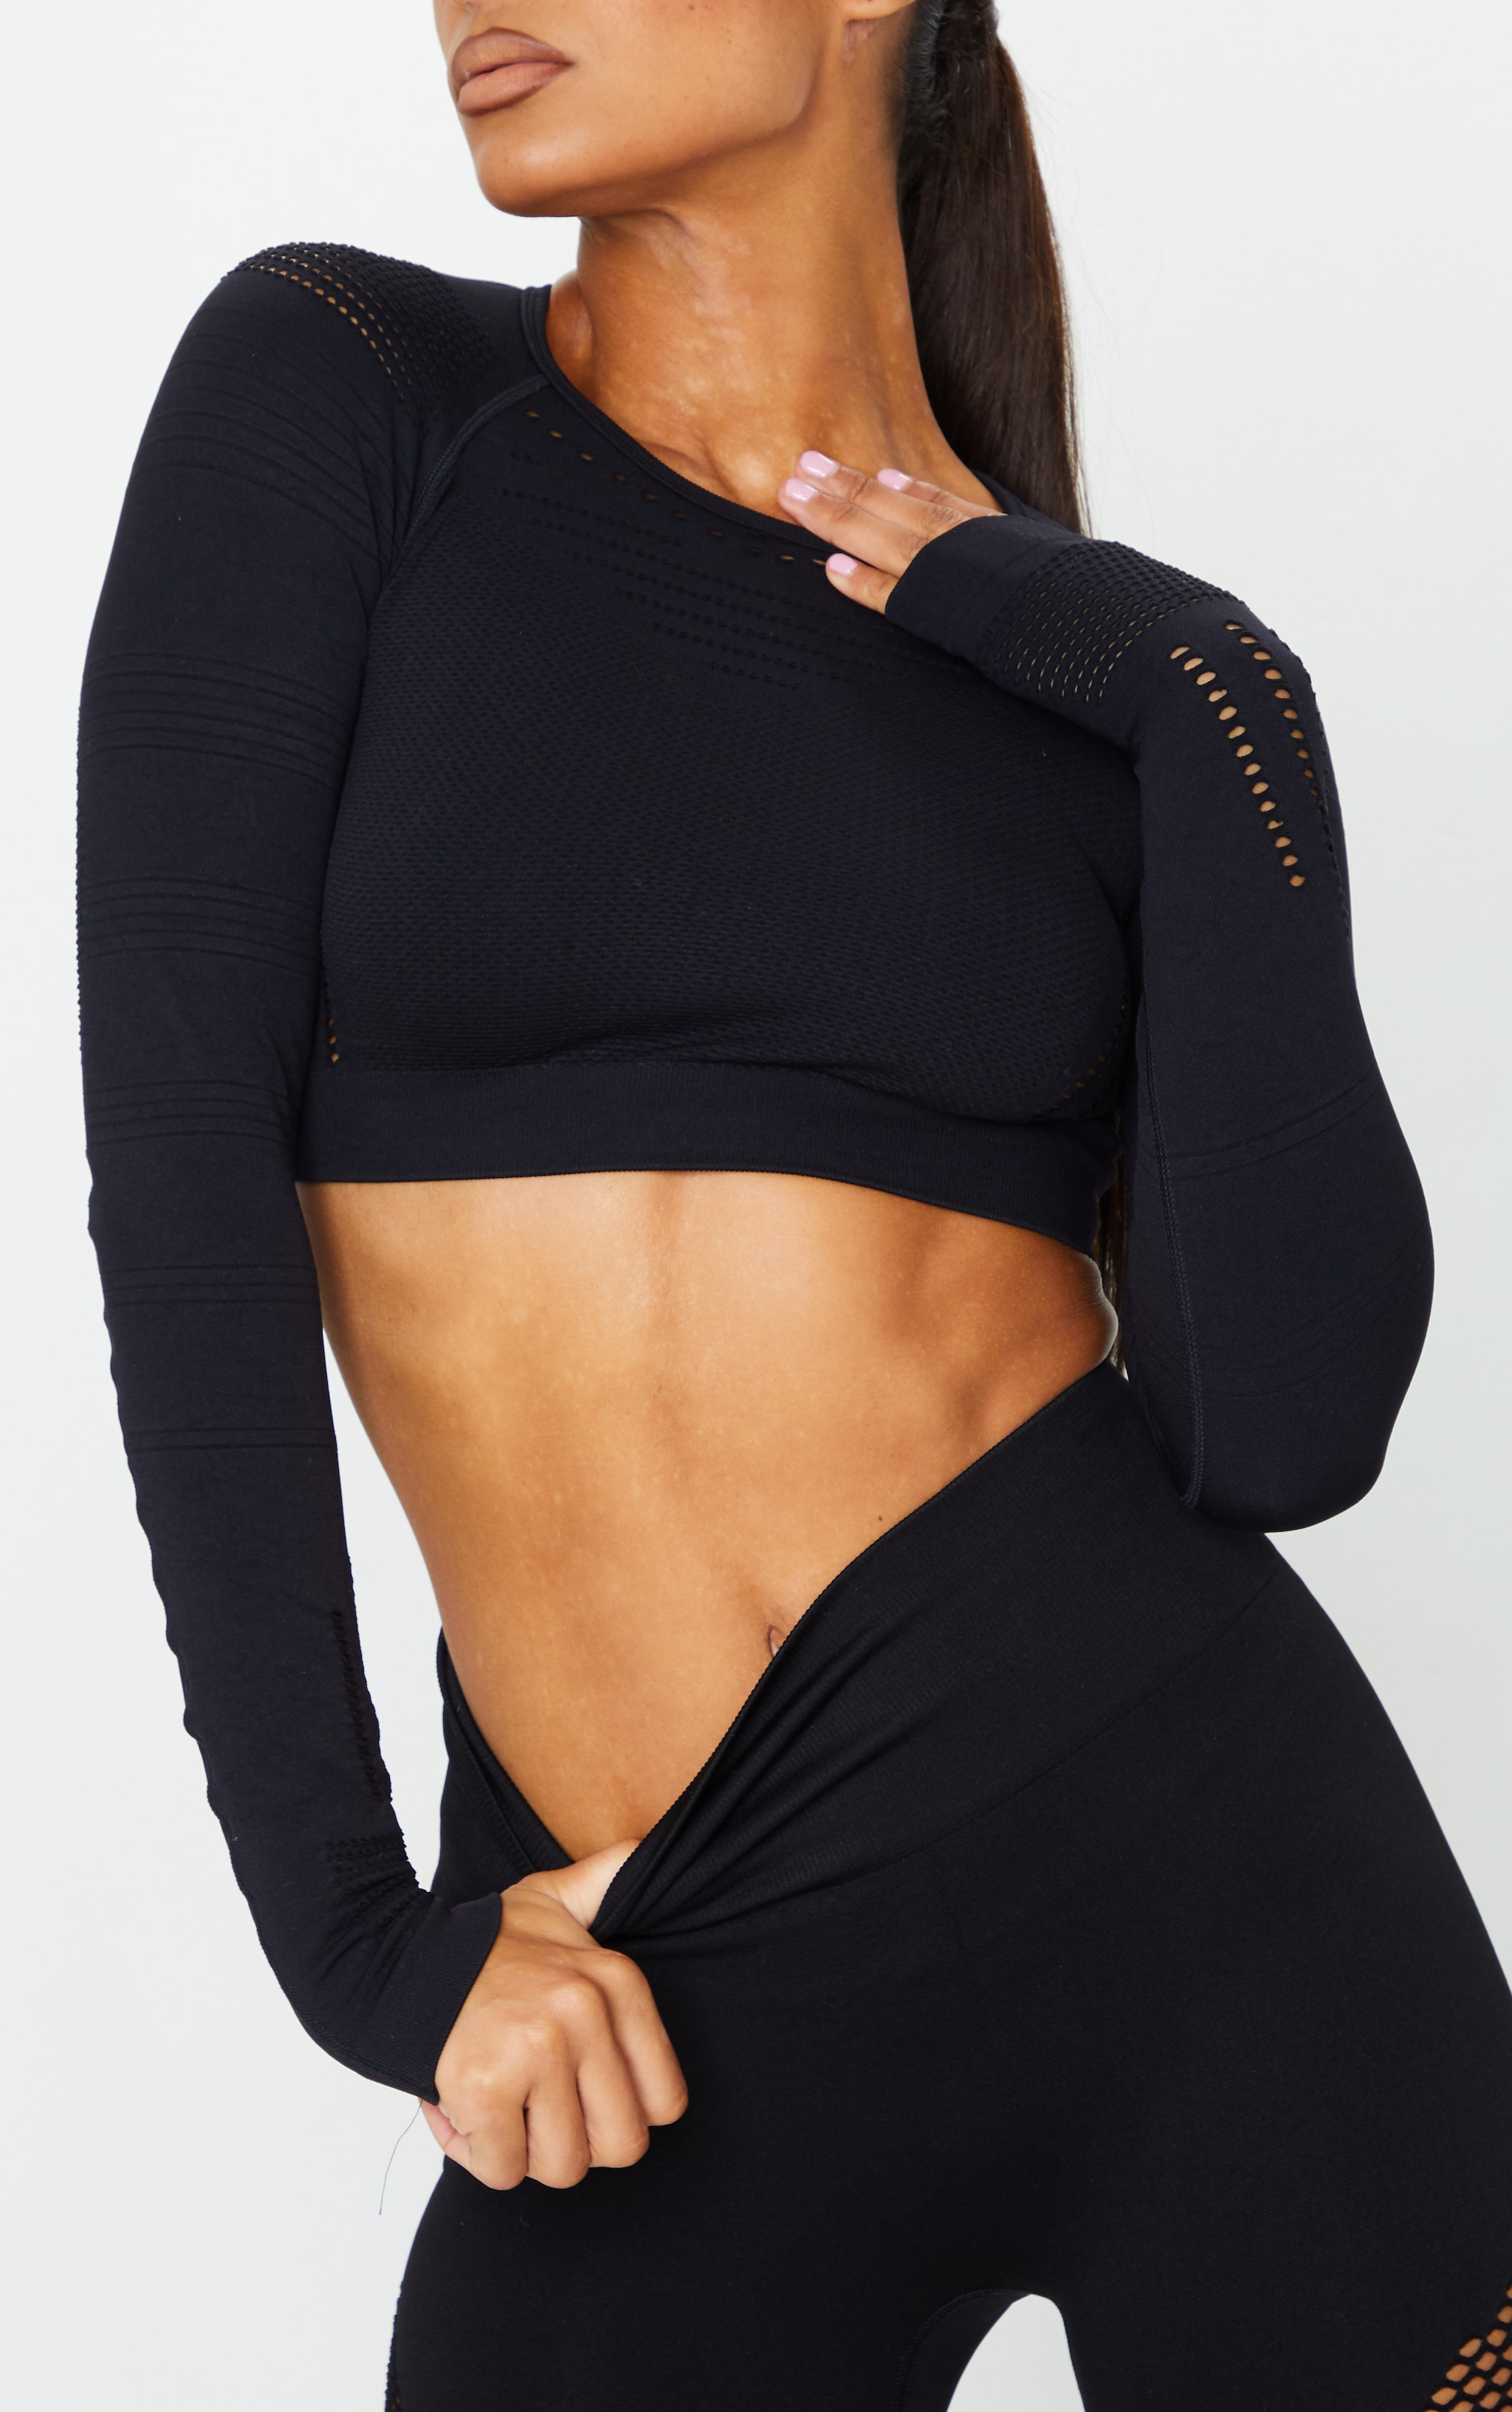 PRETTYLITTLETHING Black Long Sleeve Cut Out Seamless Top 3